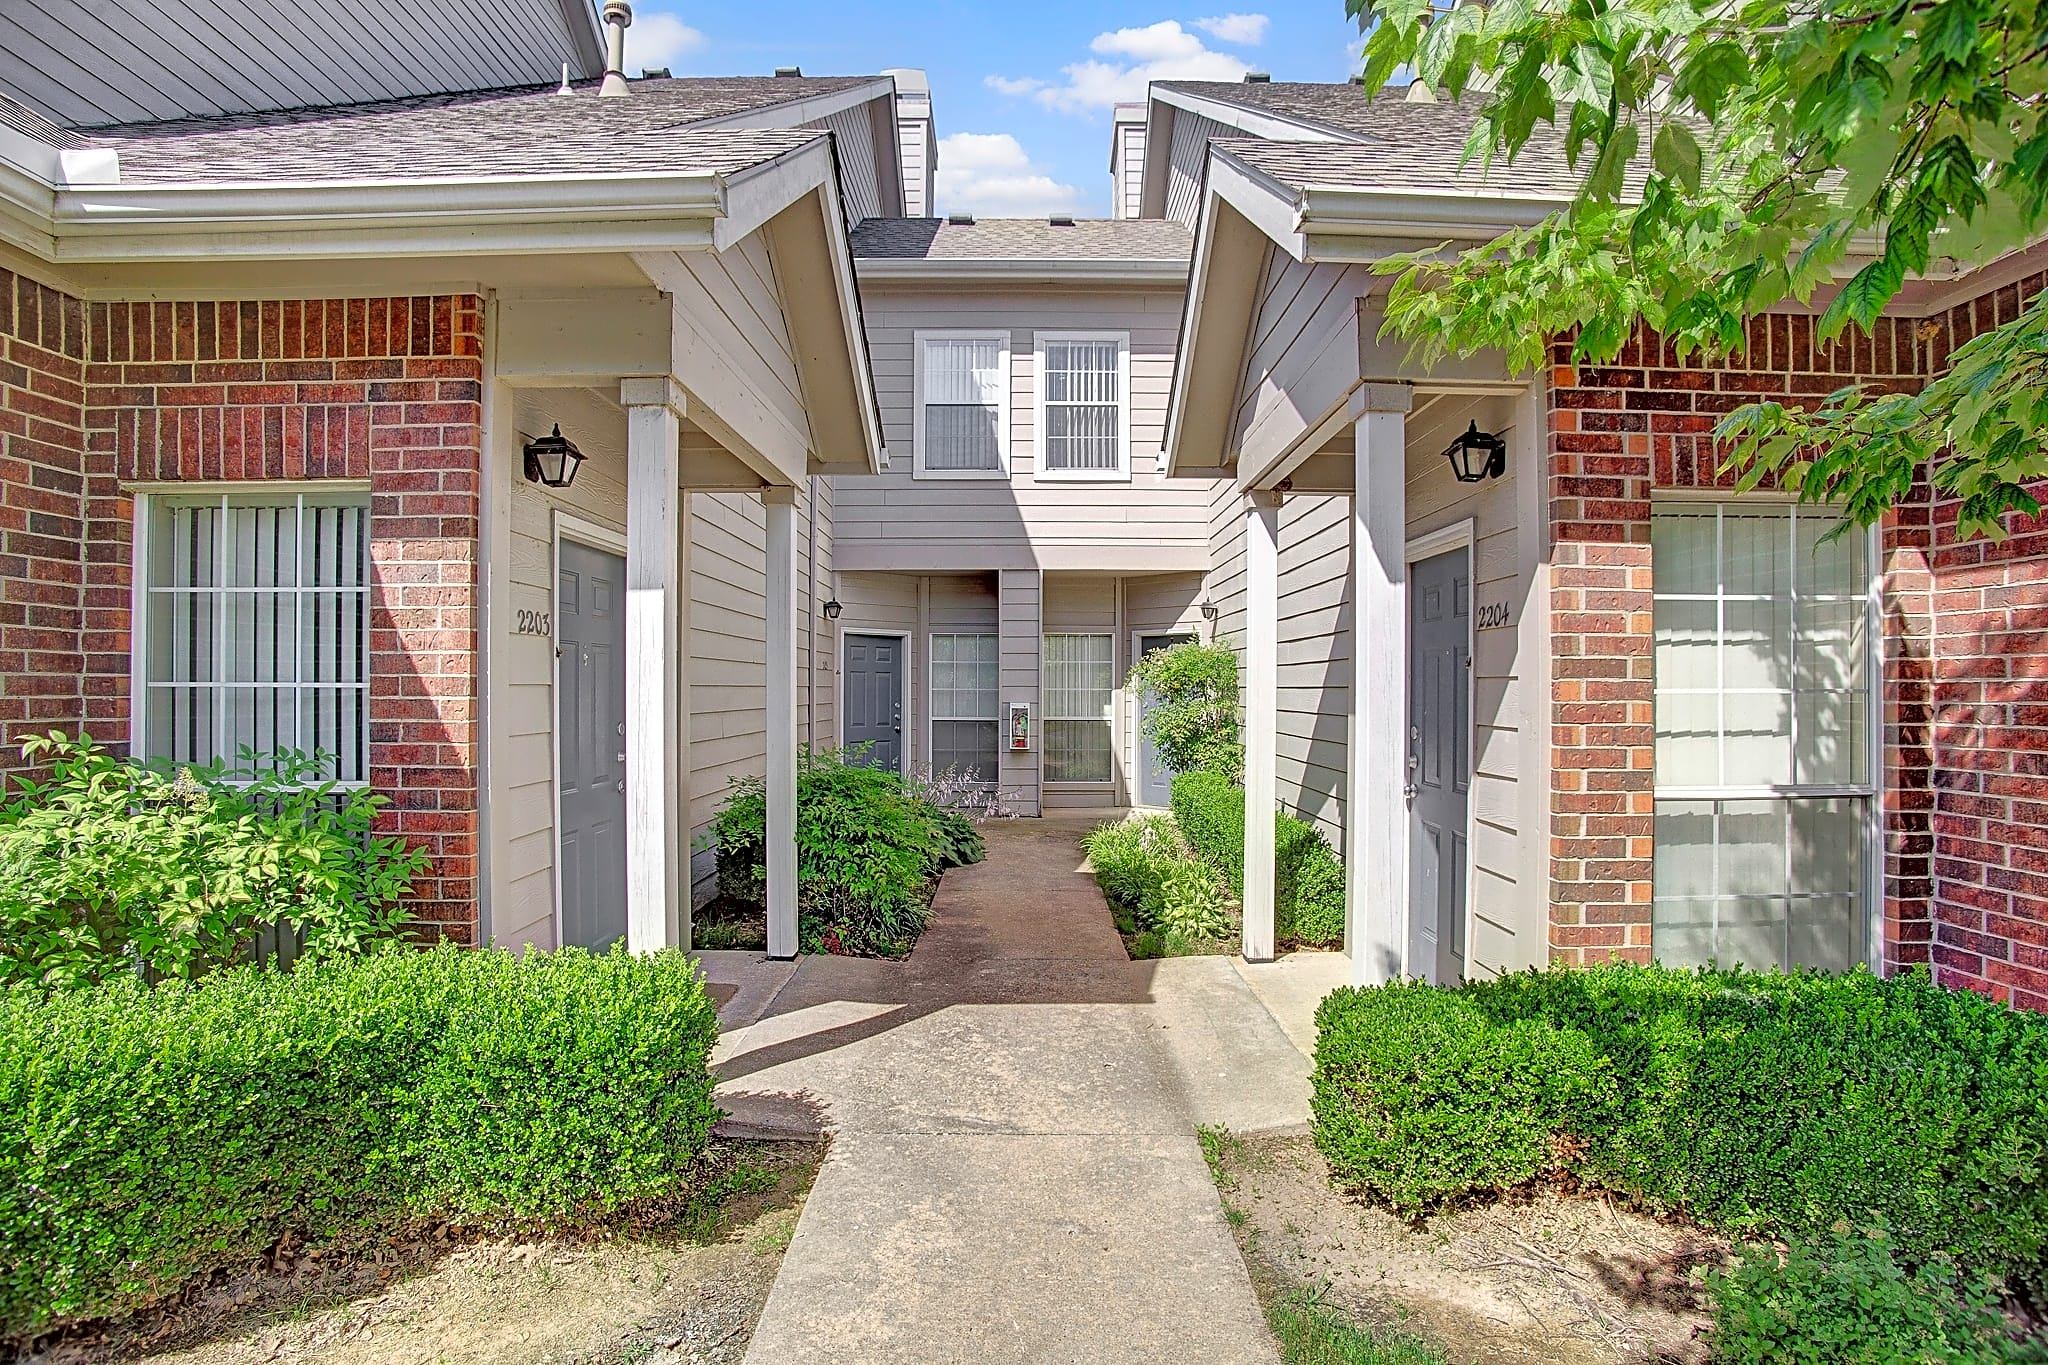 Townhome feel with separate entrances